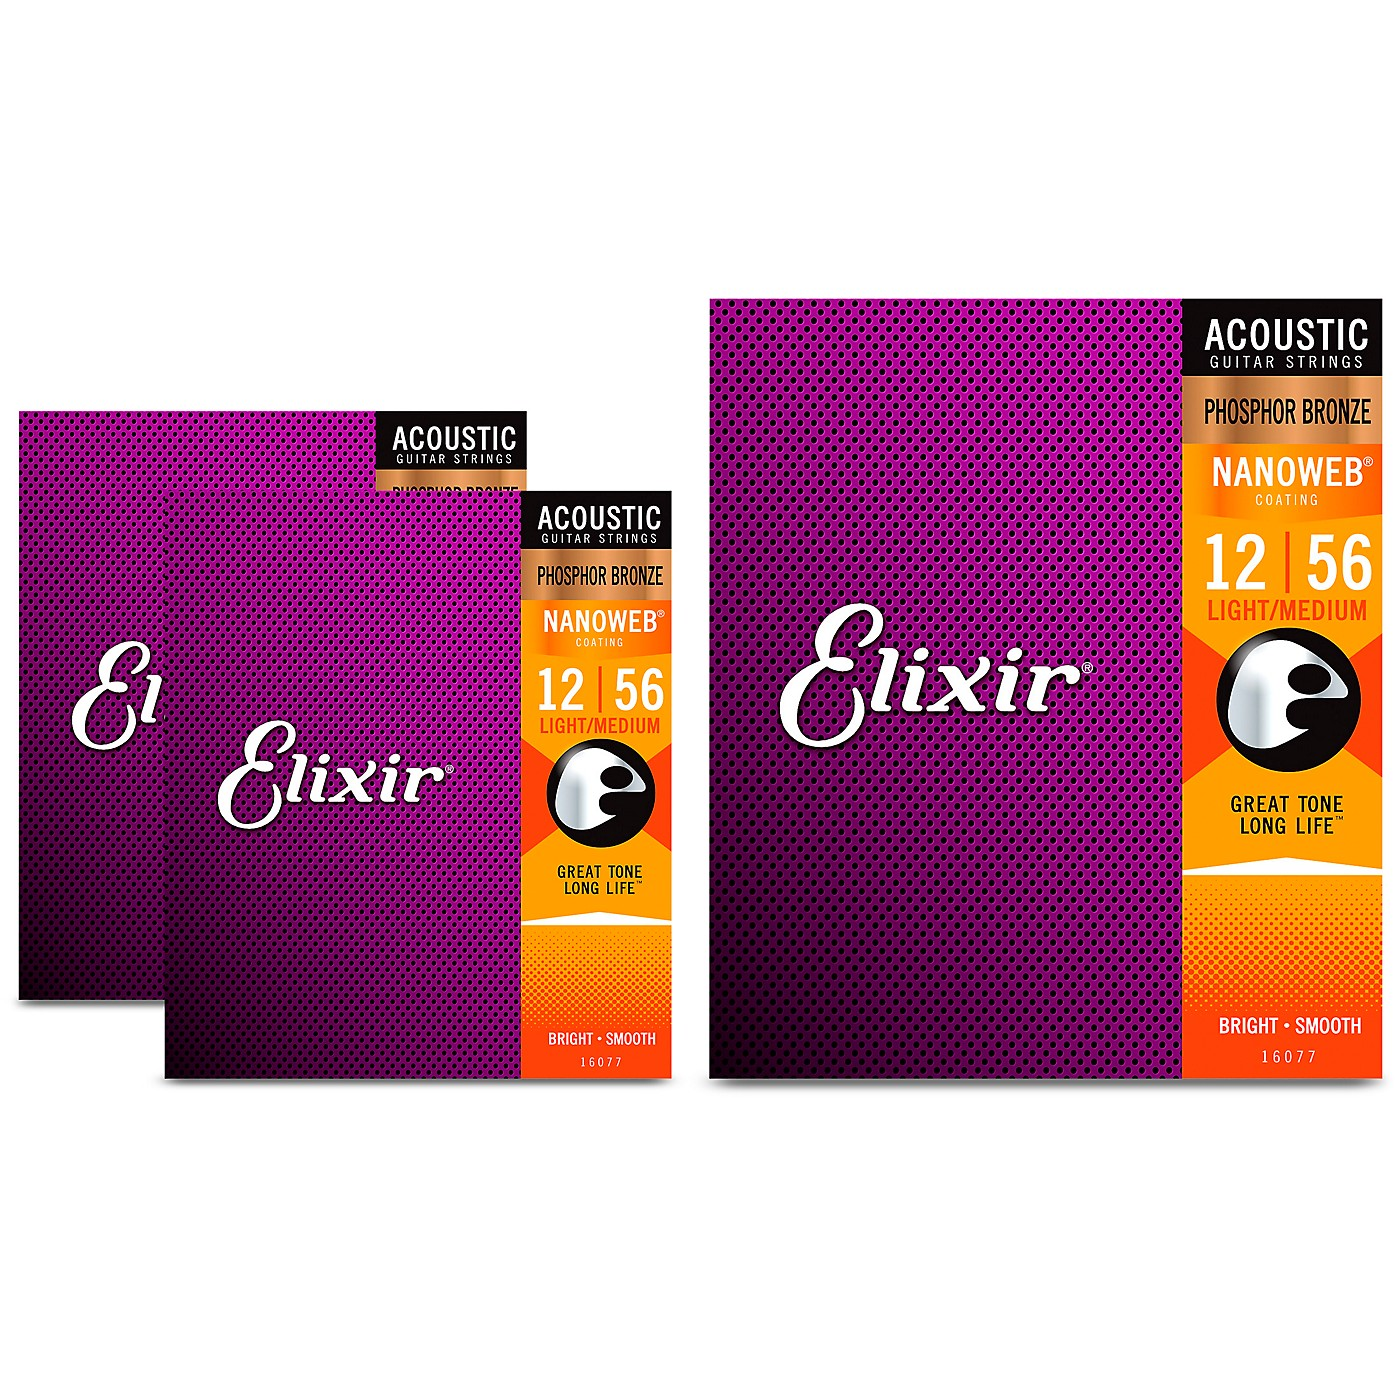 Elixir Nanoweb Light/Medium Phosphor Bronze Acoustic Guitar Strings 3 Pack thumbnail